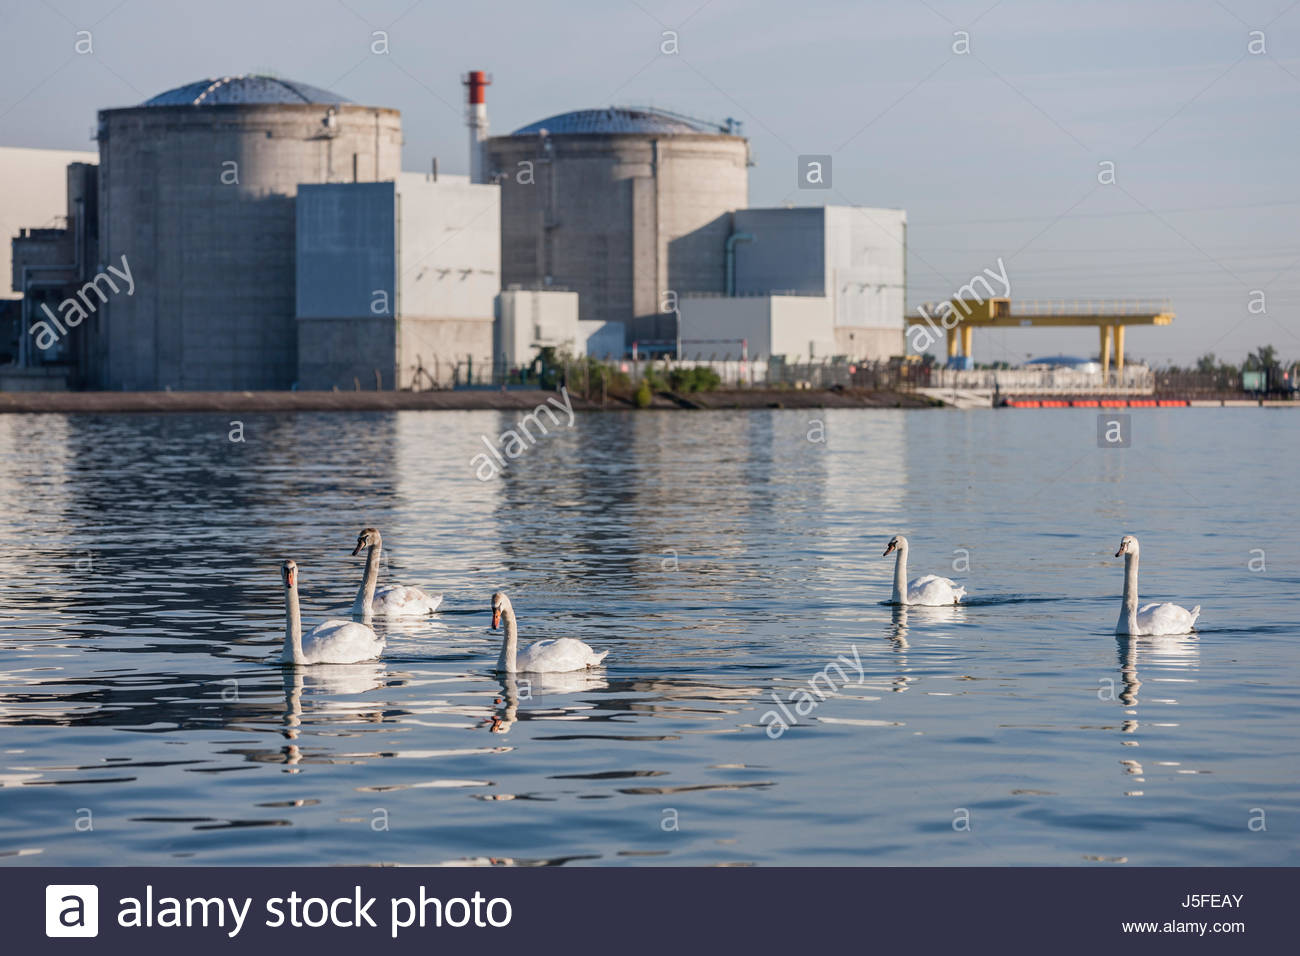 The Nuclear power plant in Fessenheim/France is located on the Grand Canal d'Alsace close to the French-German - Stock Image